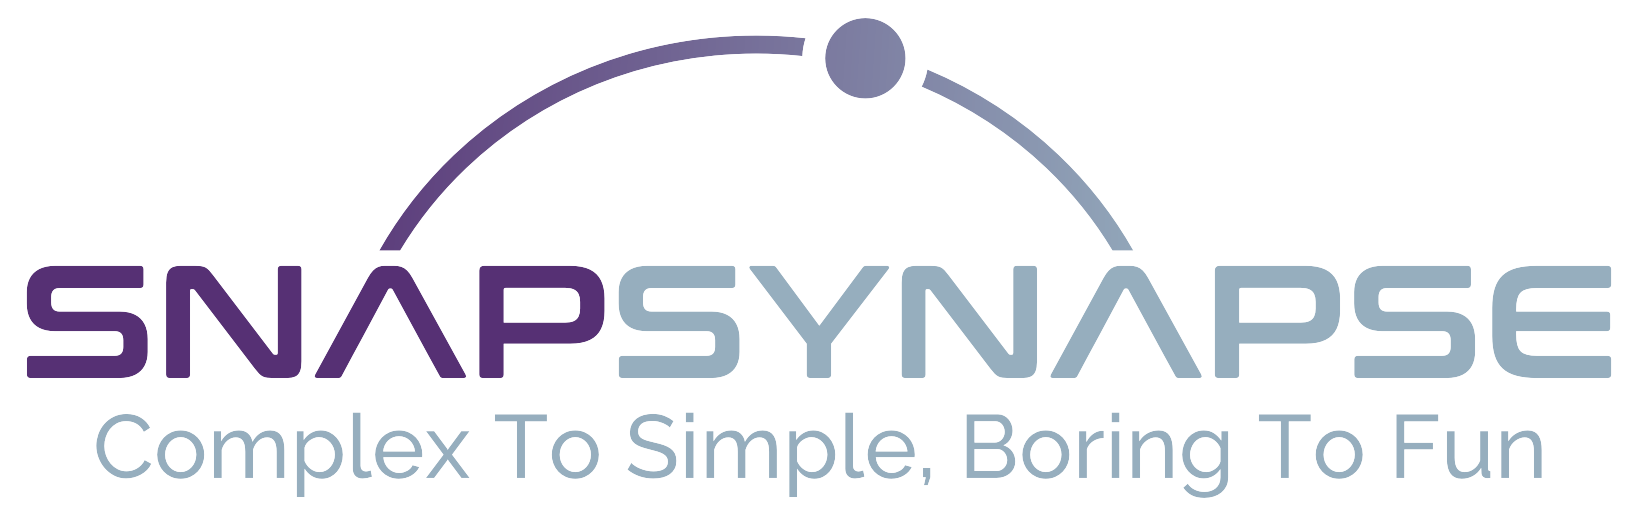 Snap Synapse LLC